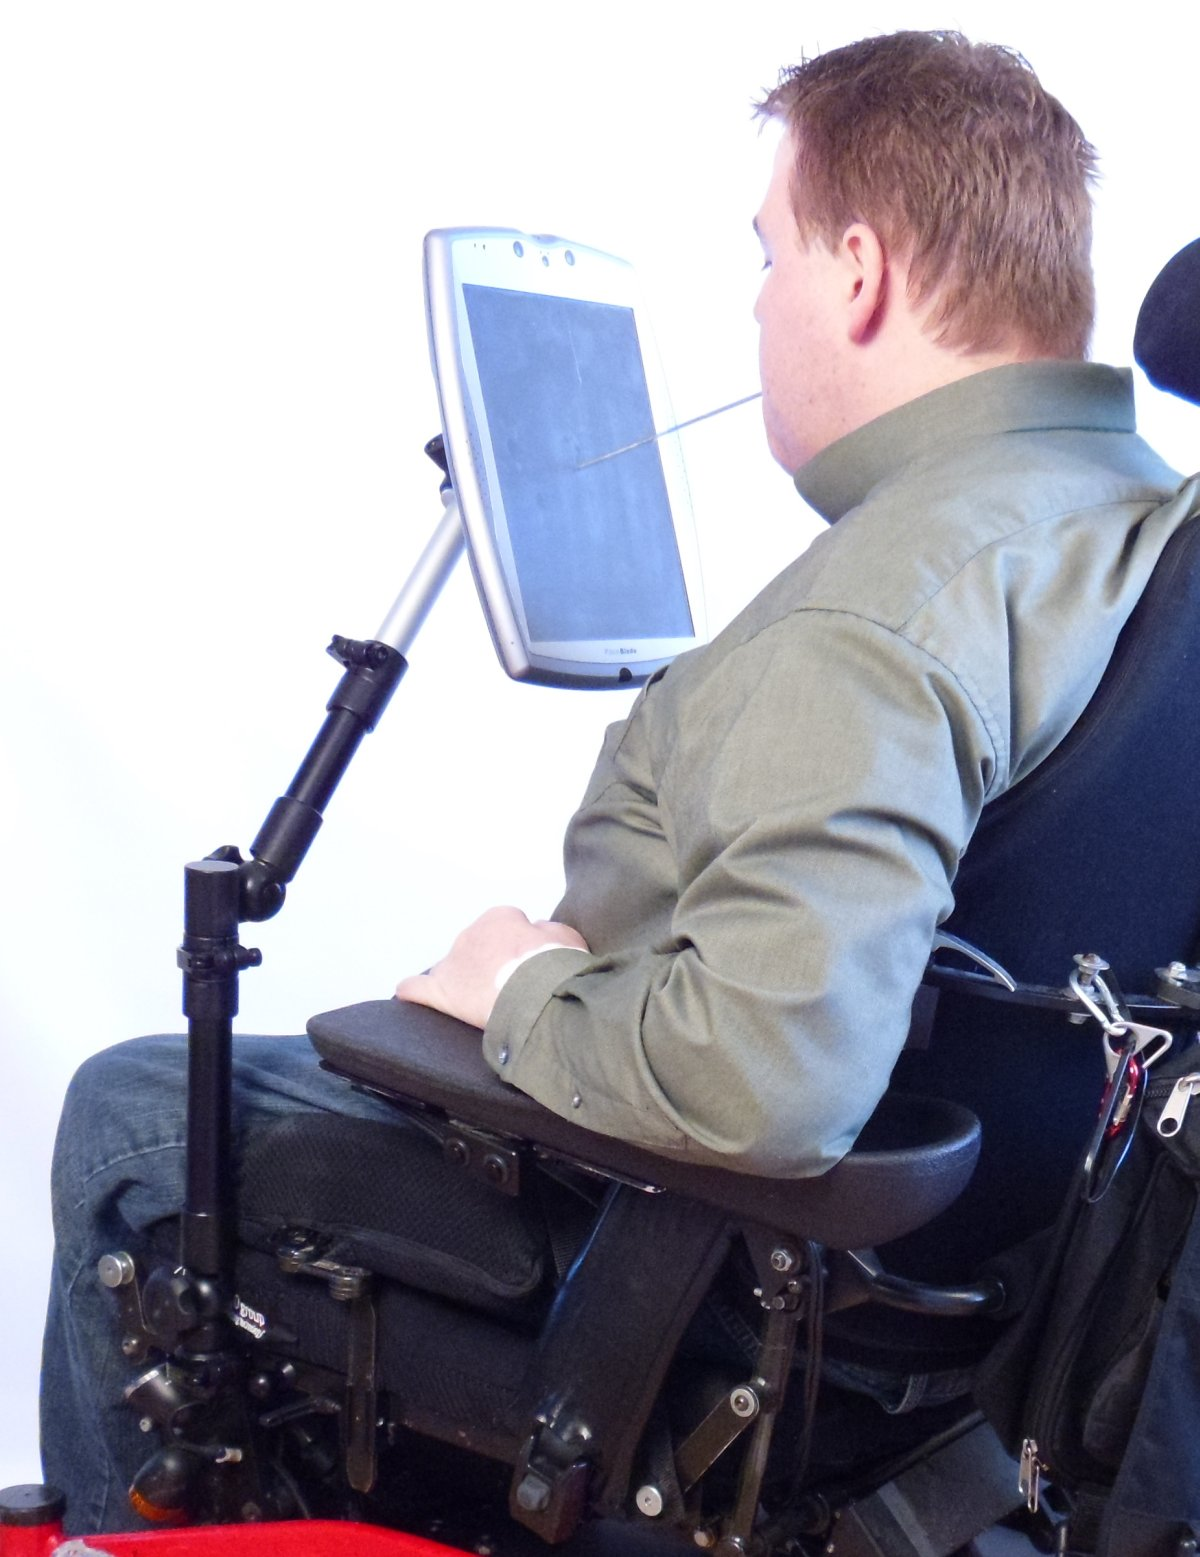 Robo Arm on Wheelchair -Tablet with Mouse Stick